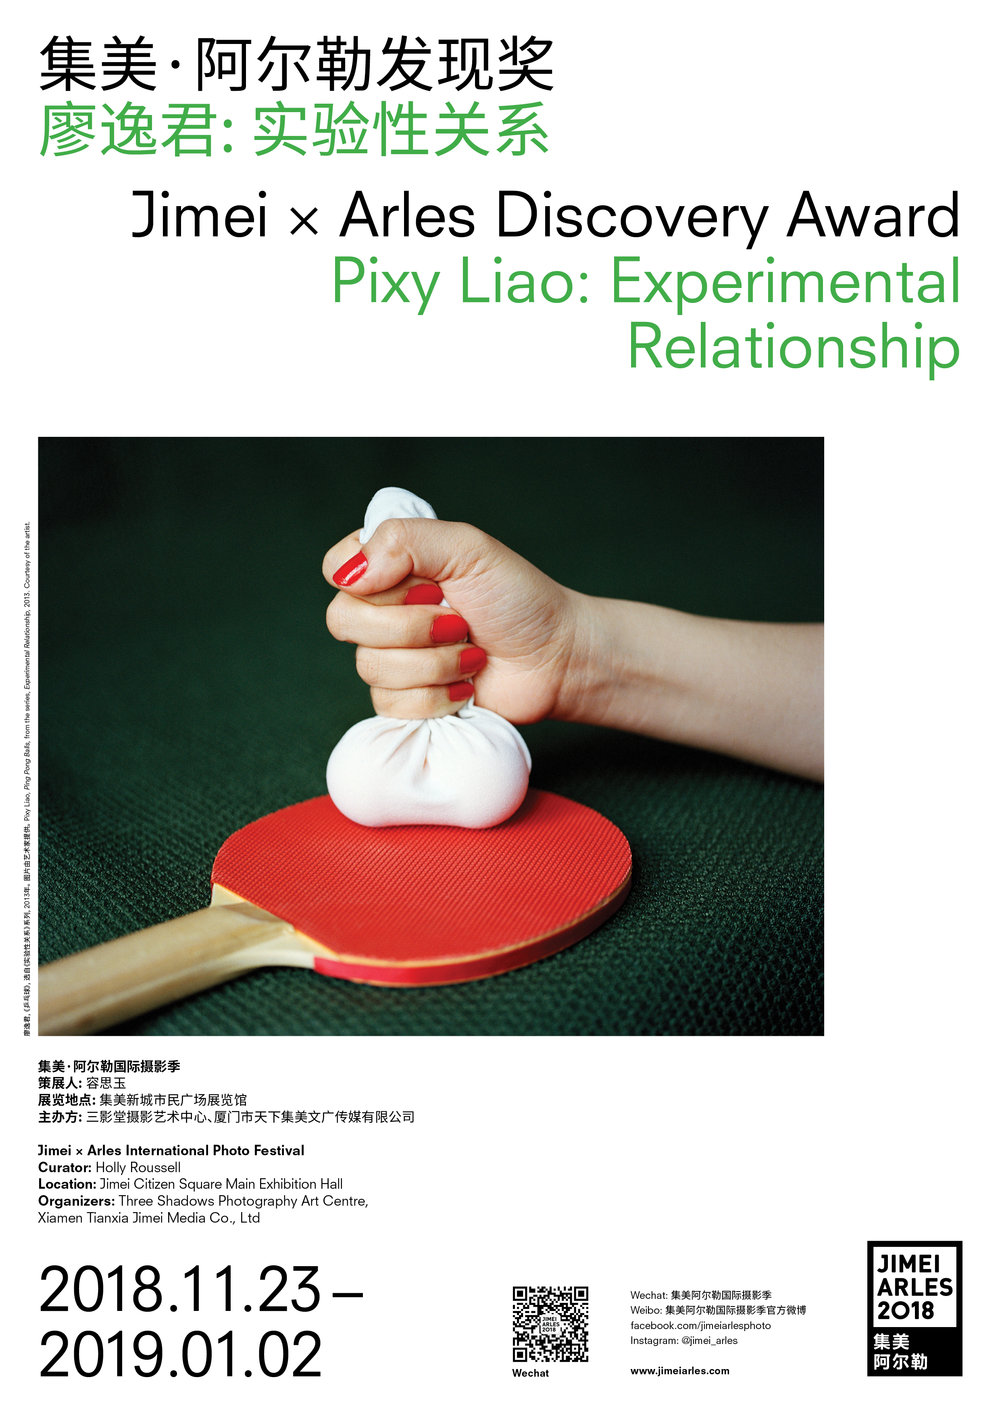 JIMEIARLES_exhibition poster_Digital_Pixy_Liao.jpg